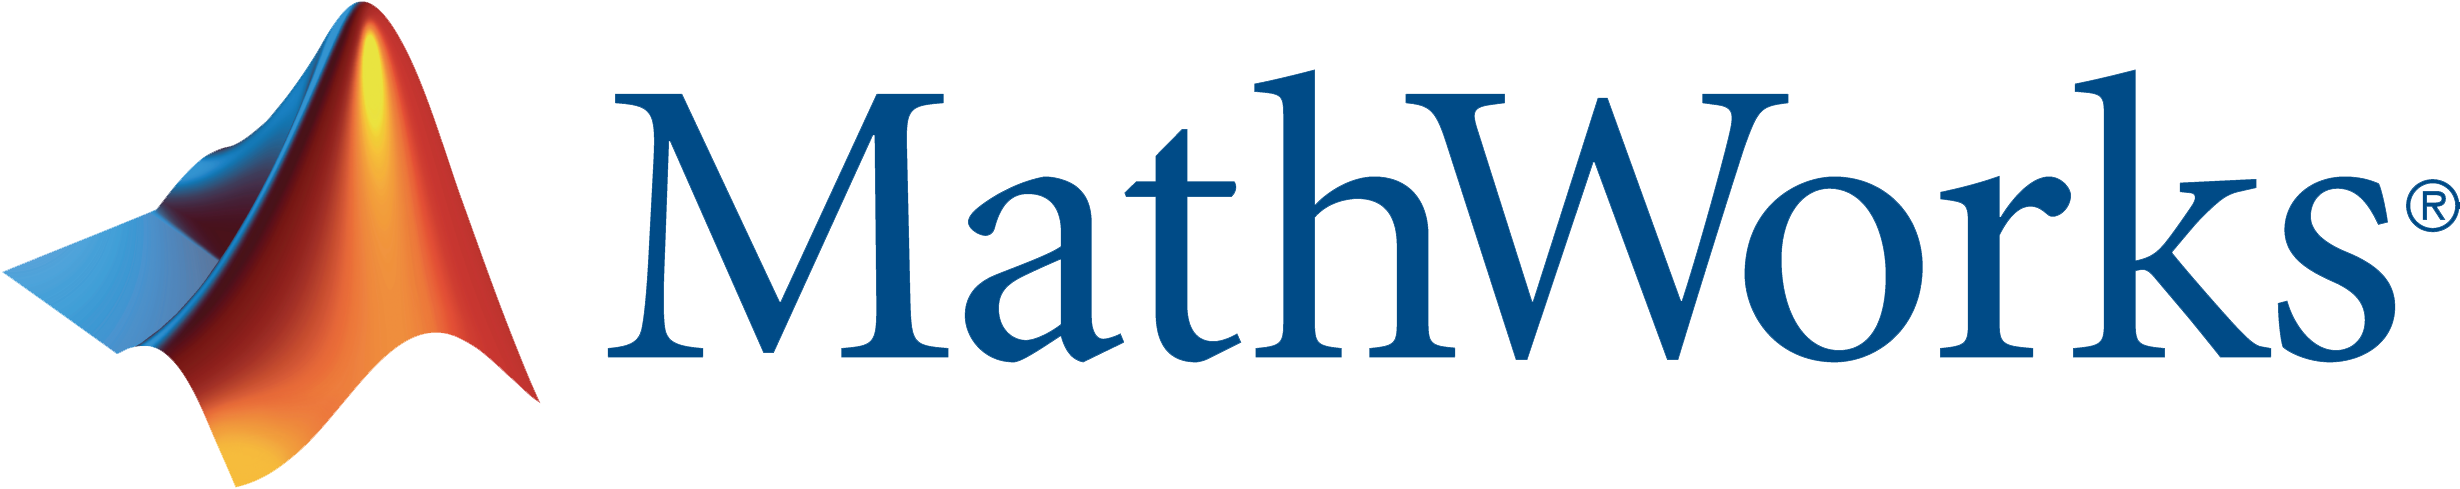 mathworks-logo-full-color-rgb.png